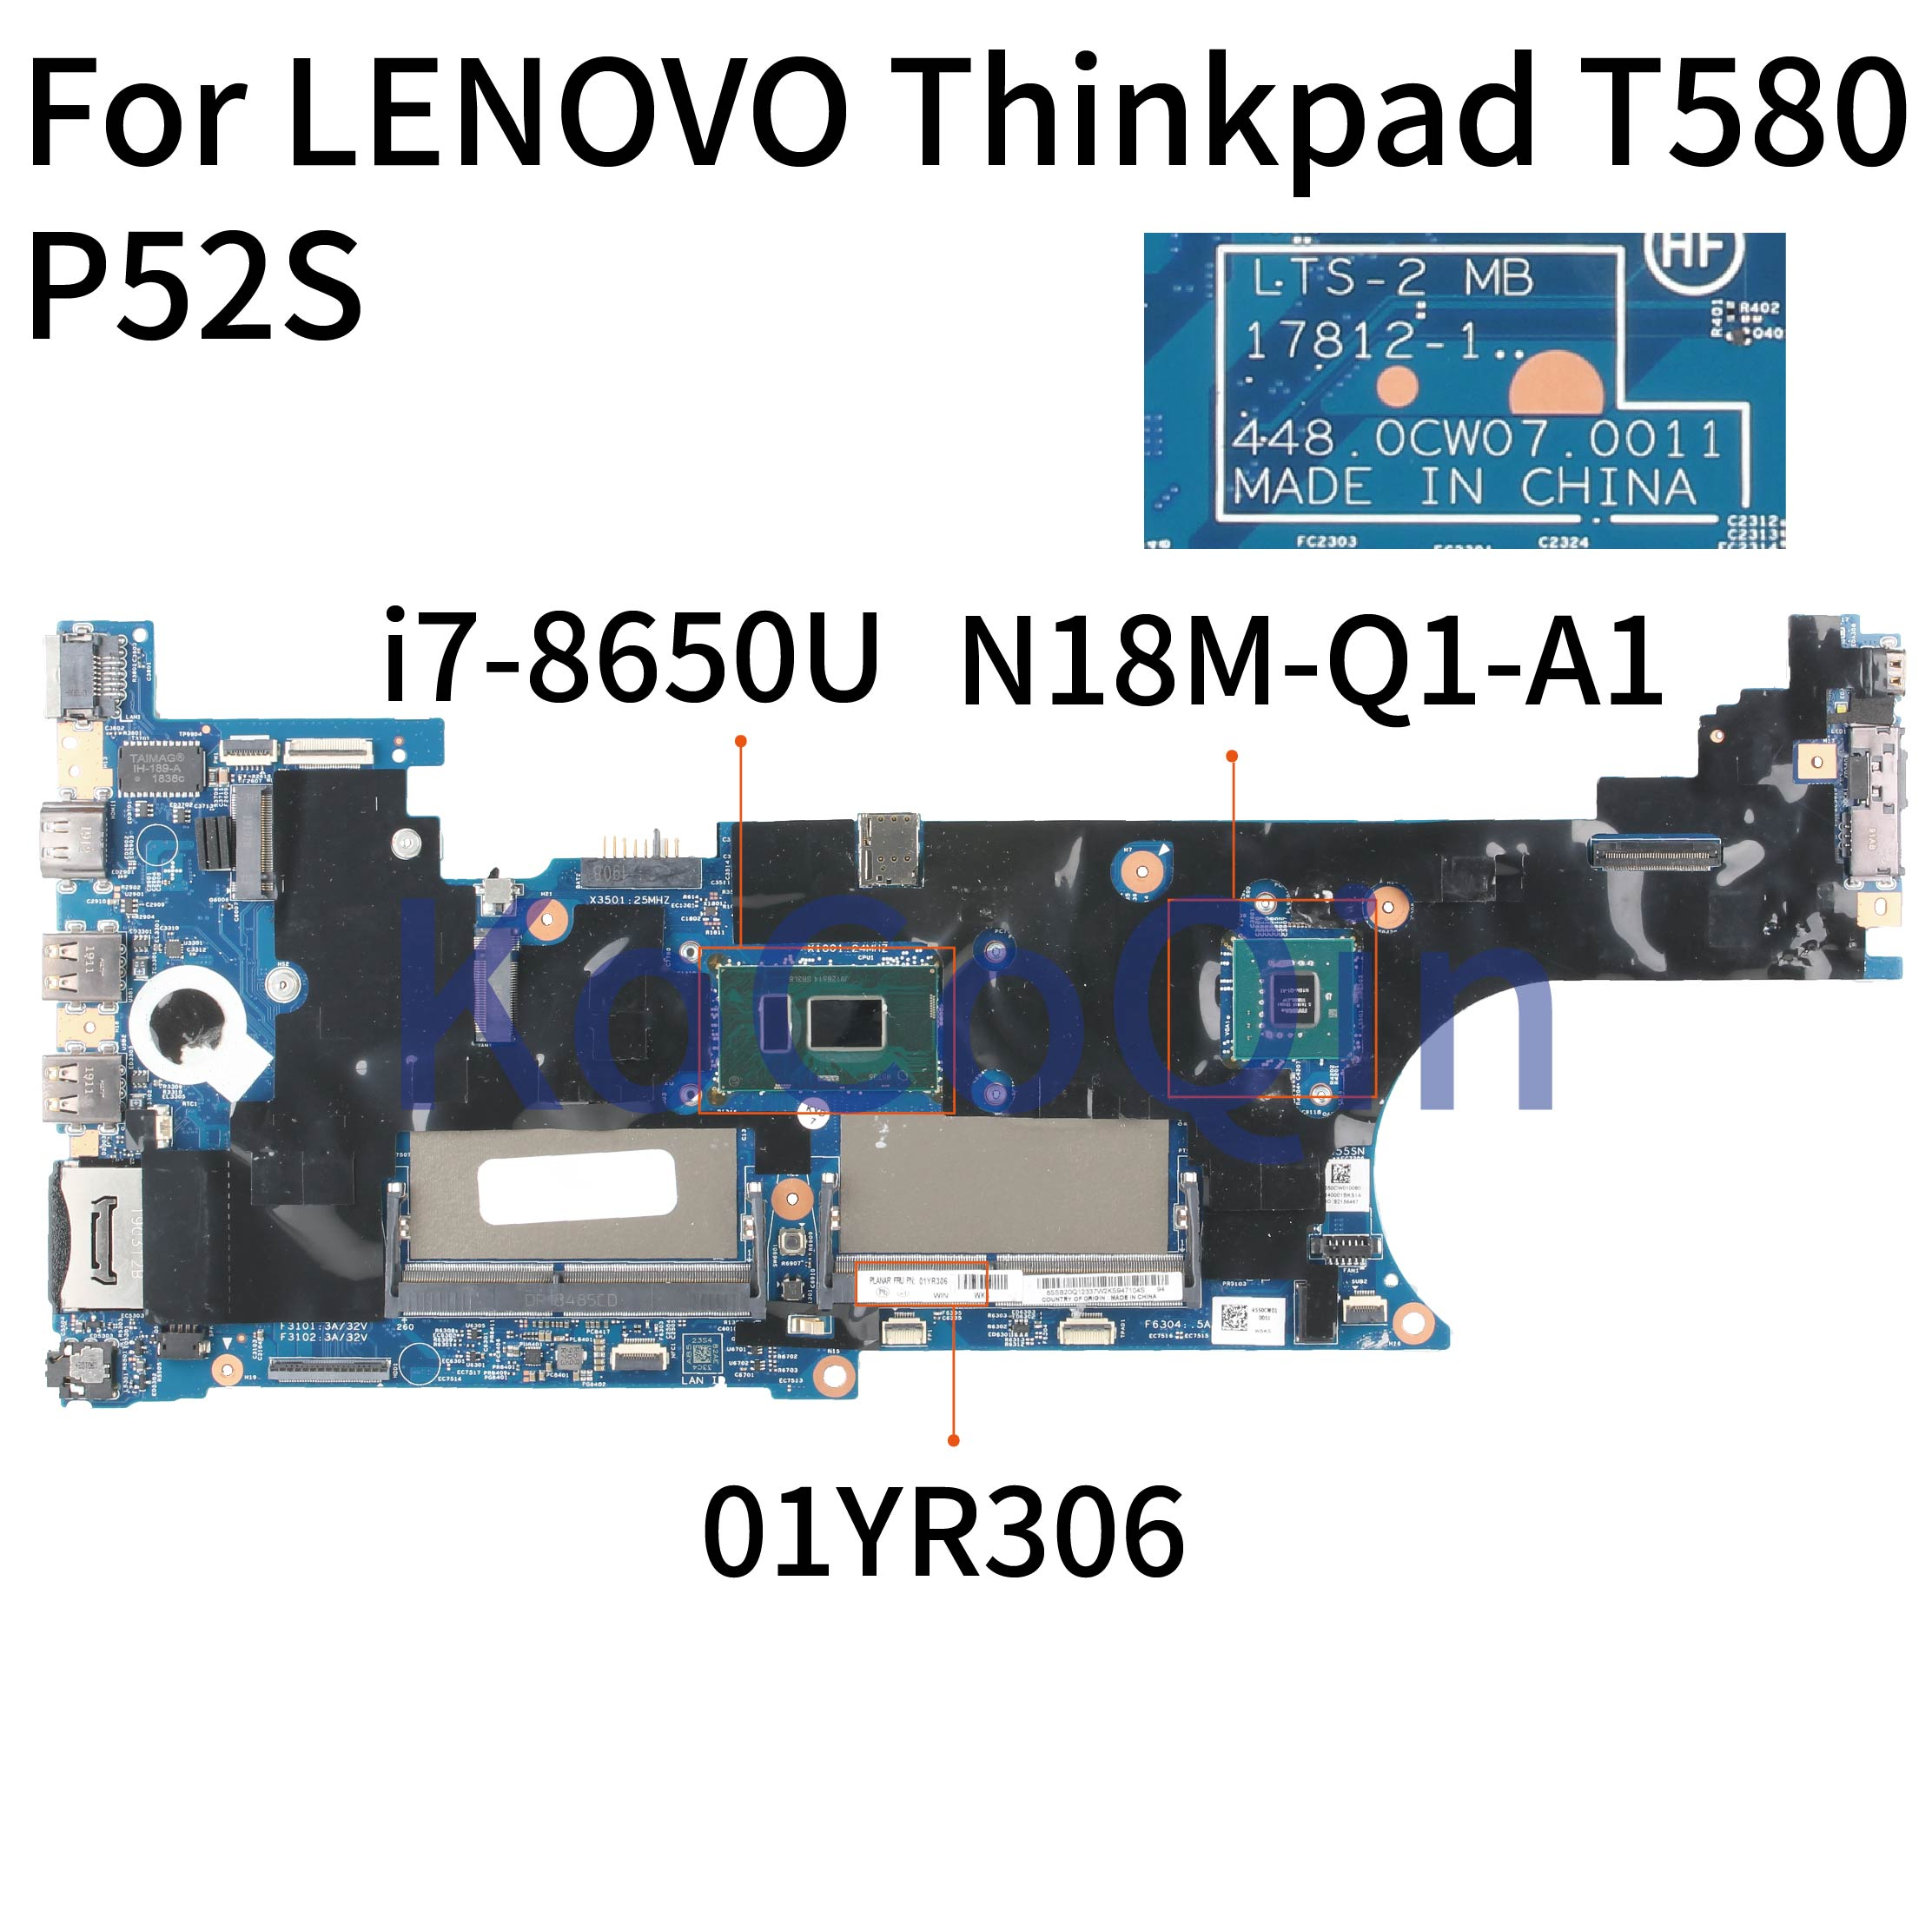 KoCoQin Laptop motherboard For LENOVO Thinkpad T580 P52S Core SR3L8 <font><b>i7</b></font>-<font><b>8650U</b></font> Mainboard 17812-1 01YR306 N18M-Q1-A1 image